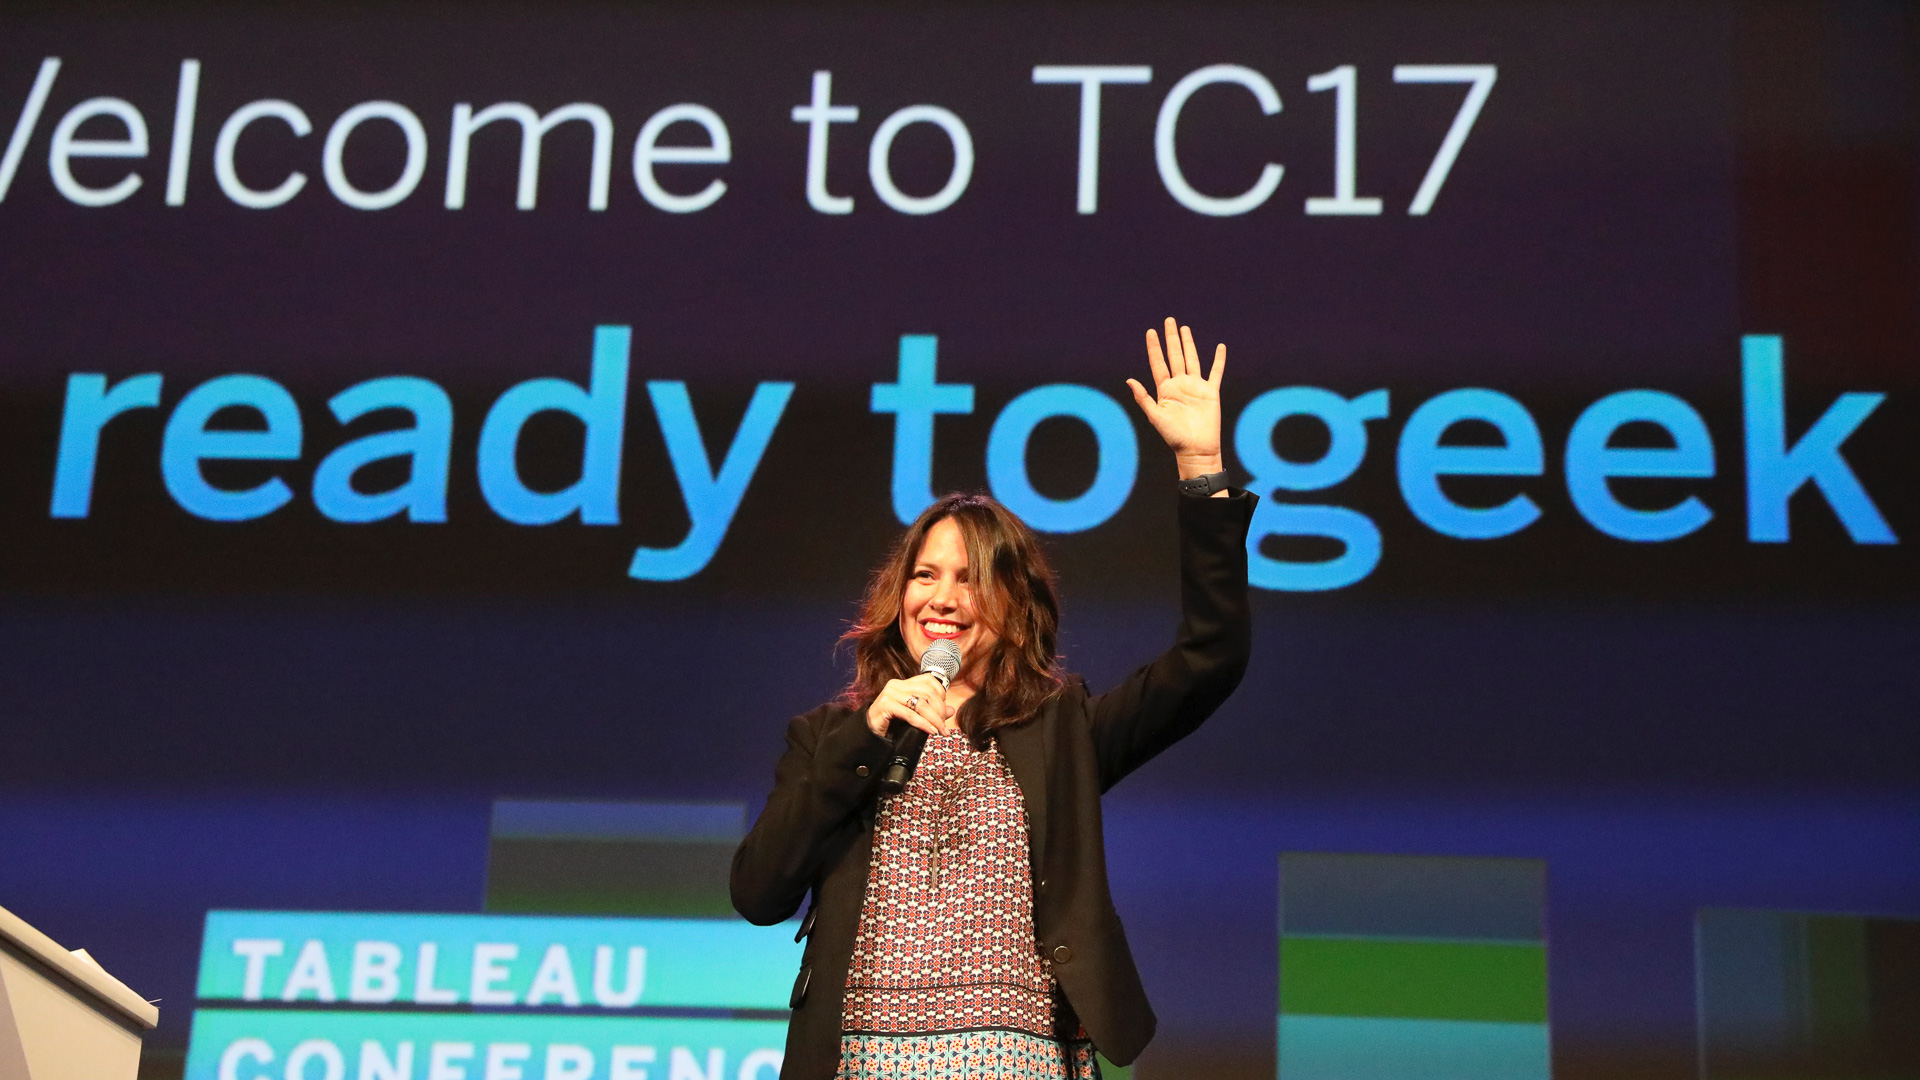 At-Tableau-Conference-2017-Welcoming-Women-Data-Keynote-speaker-Talithia-Williams-2.jpg